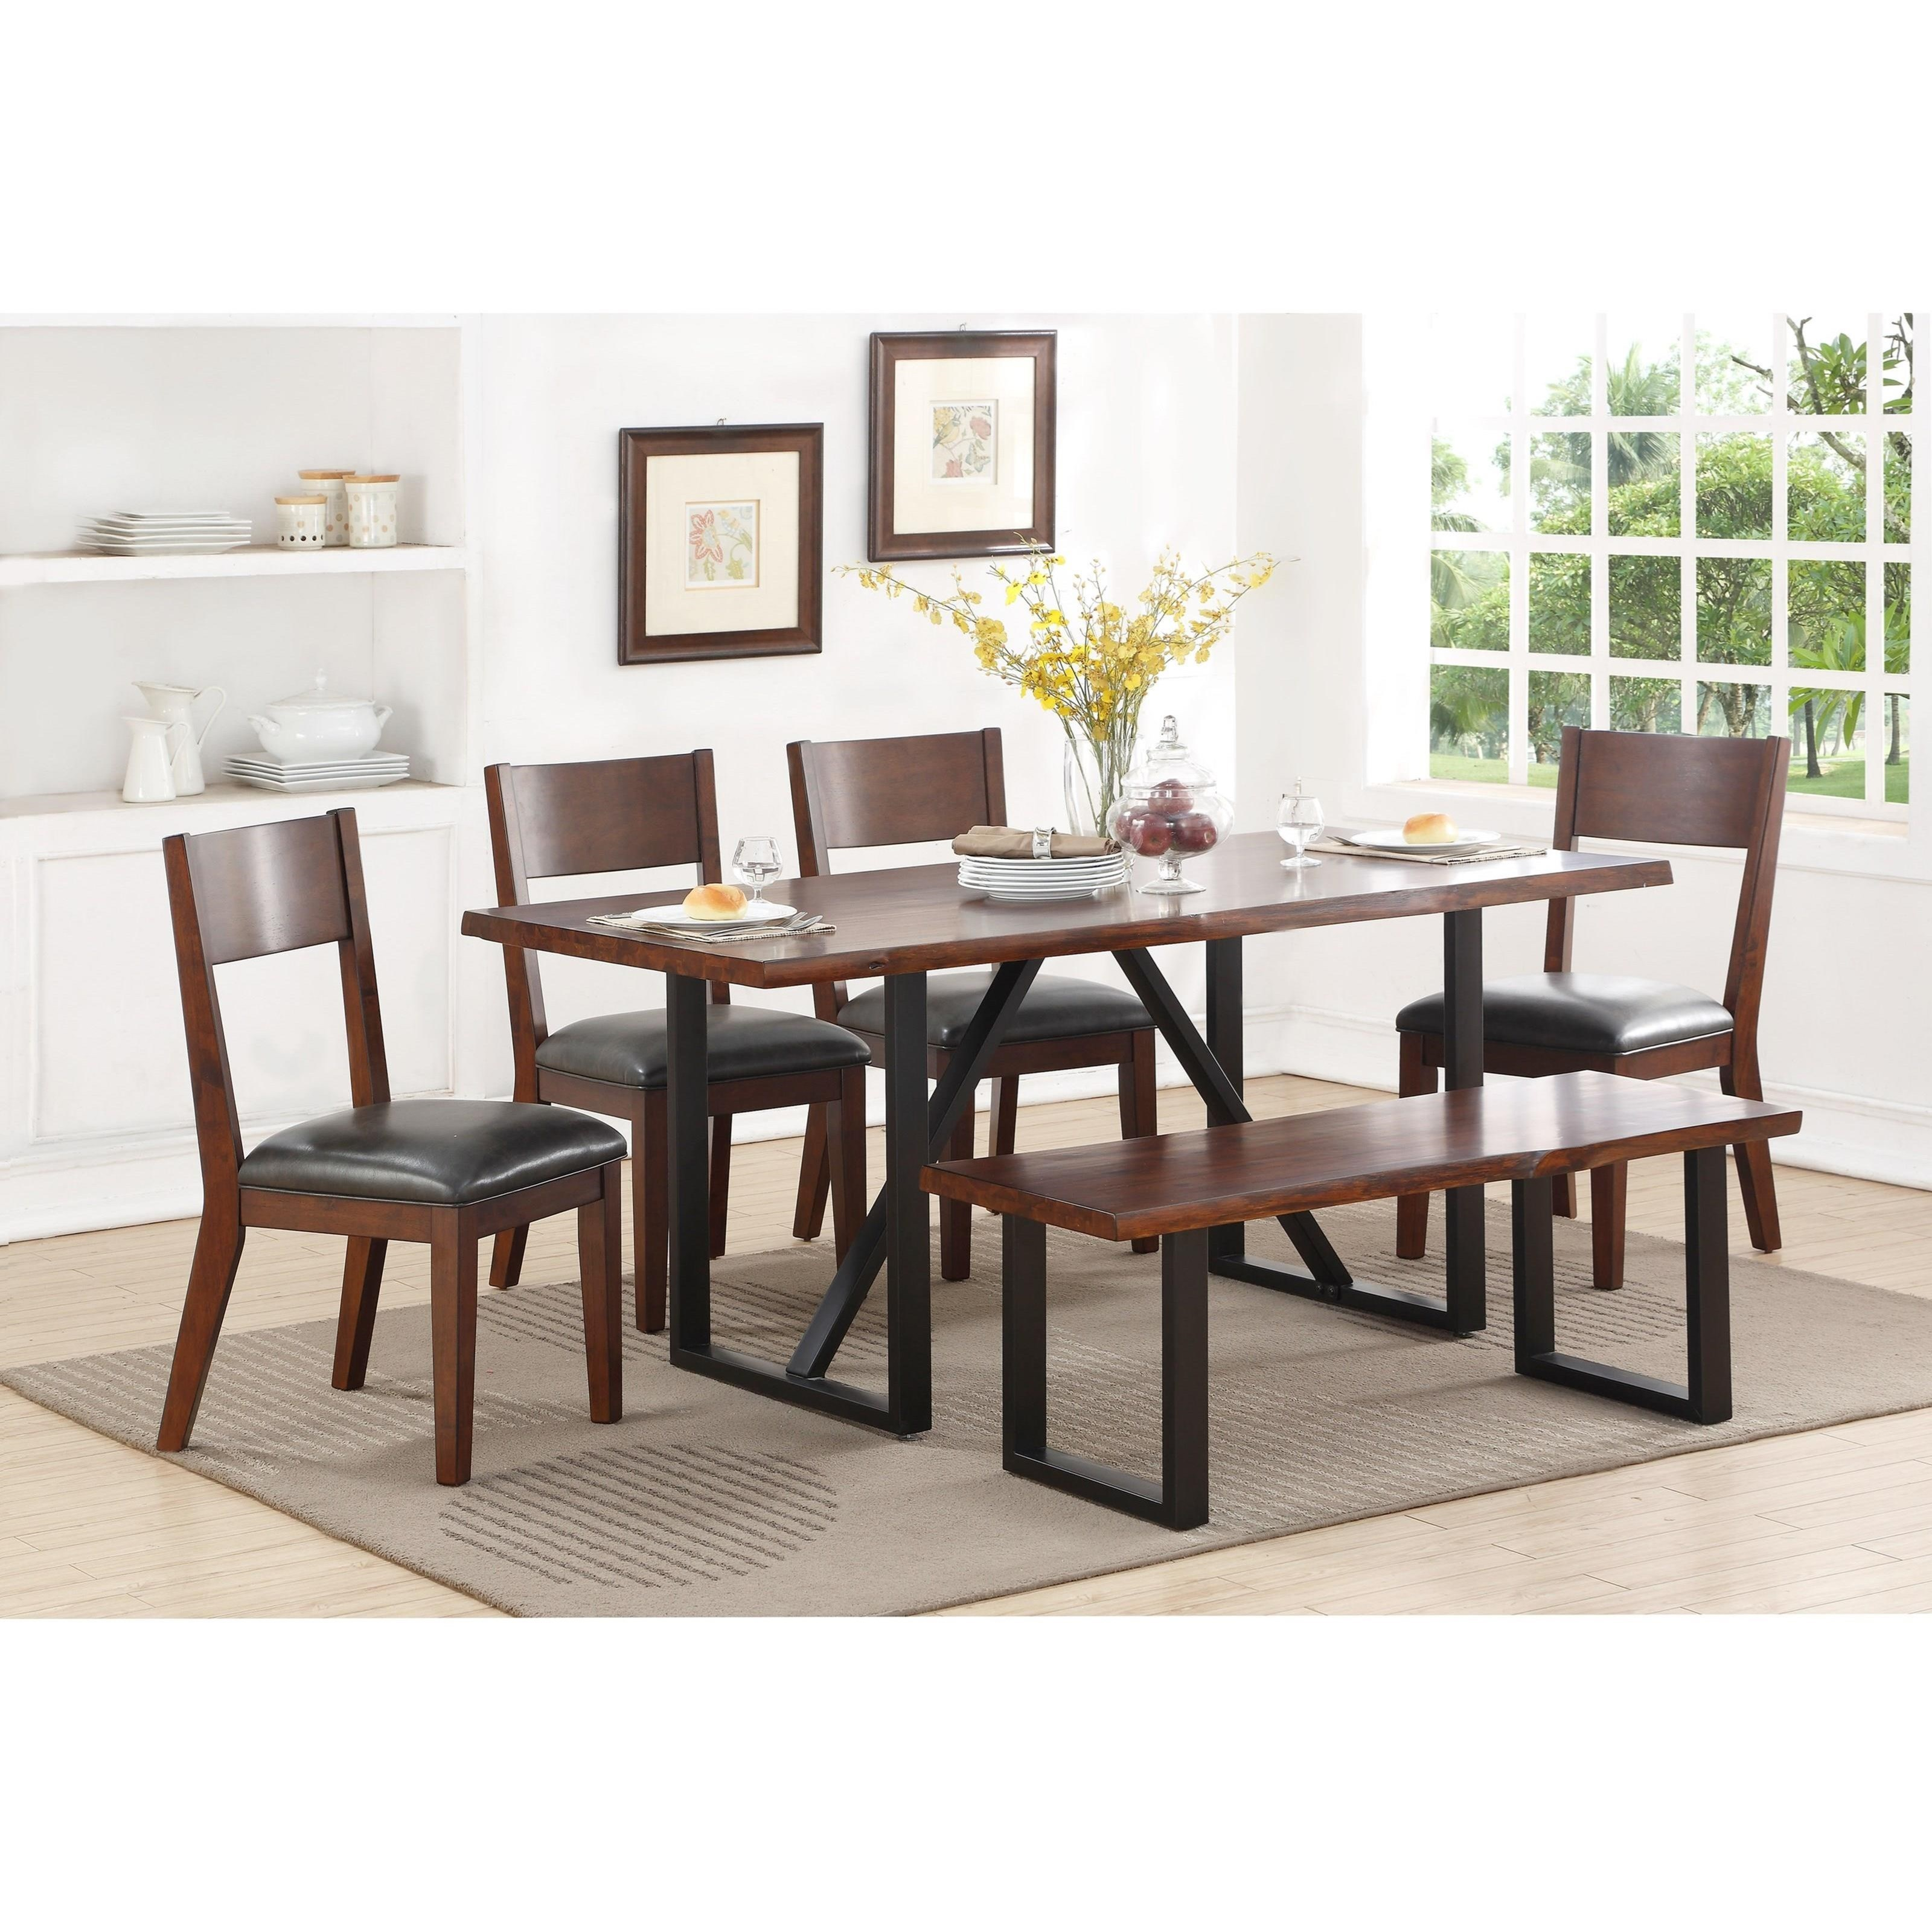 Standard furniture sierra ii rustic rectangular table with for Standard dining table